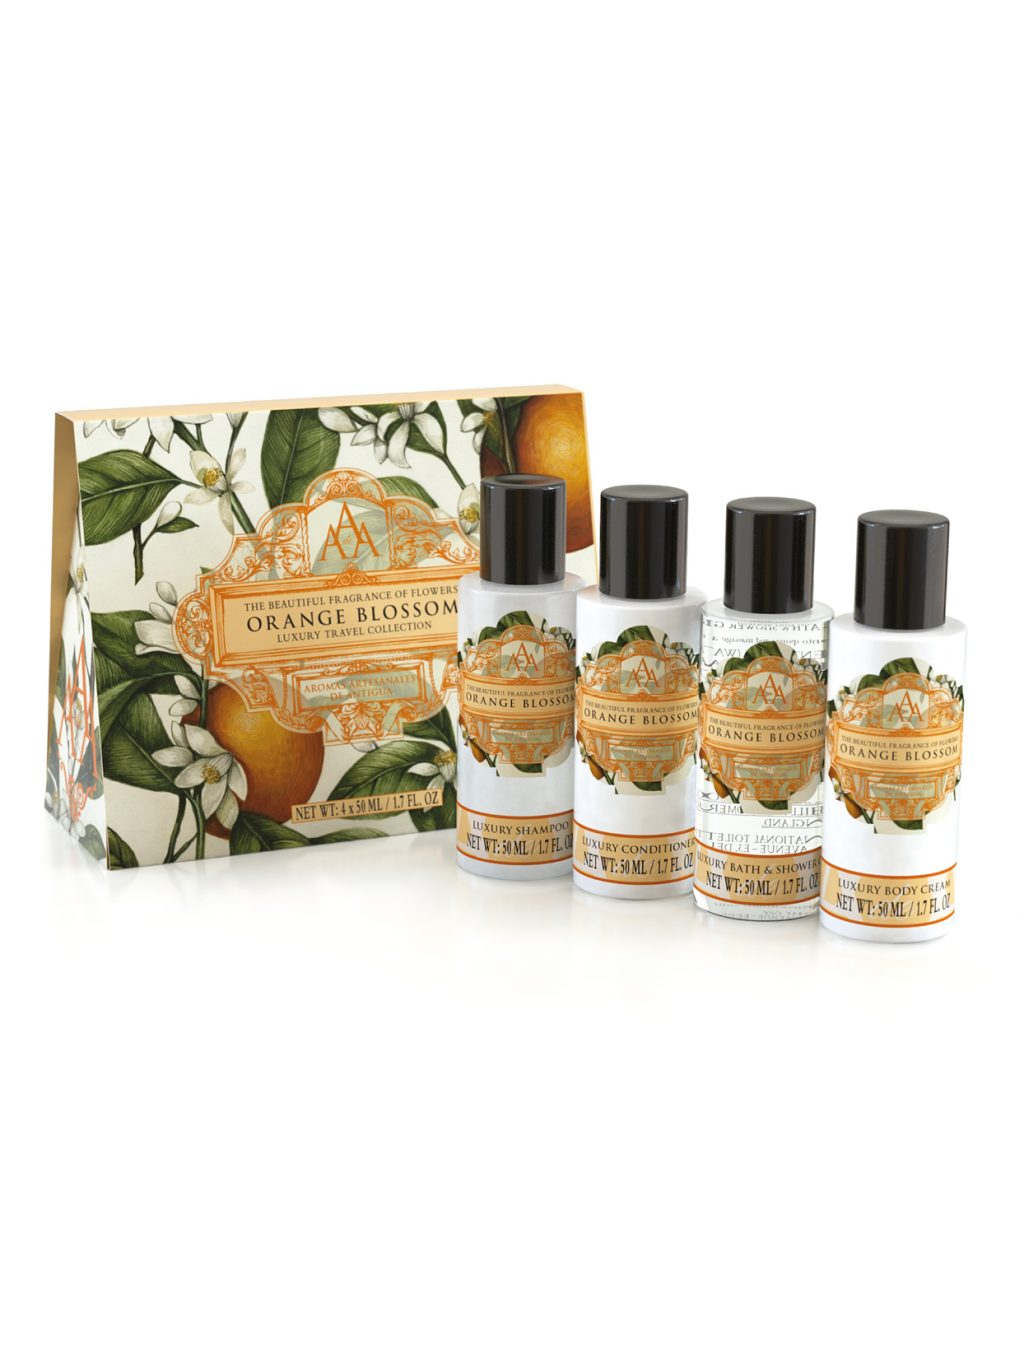 Aromas Artesanales de Antigua Travel Collection - Orange Blossom